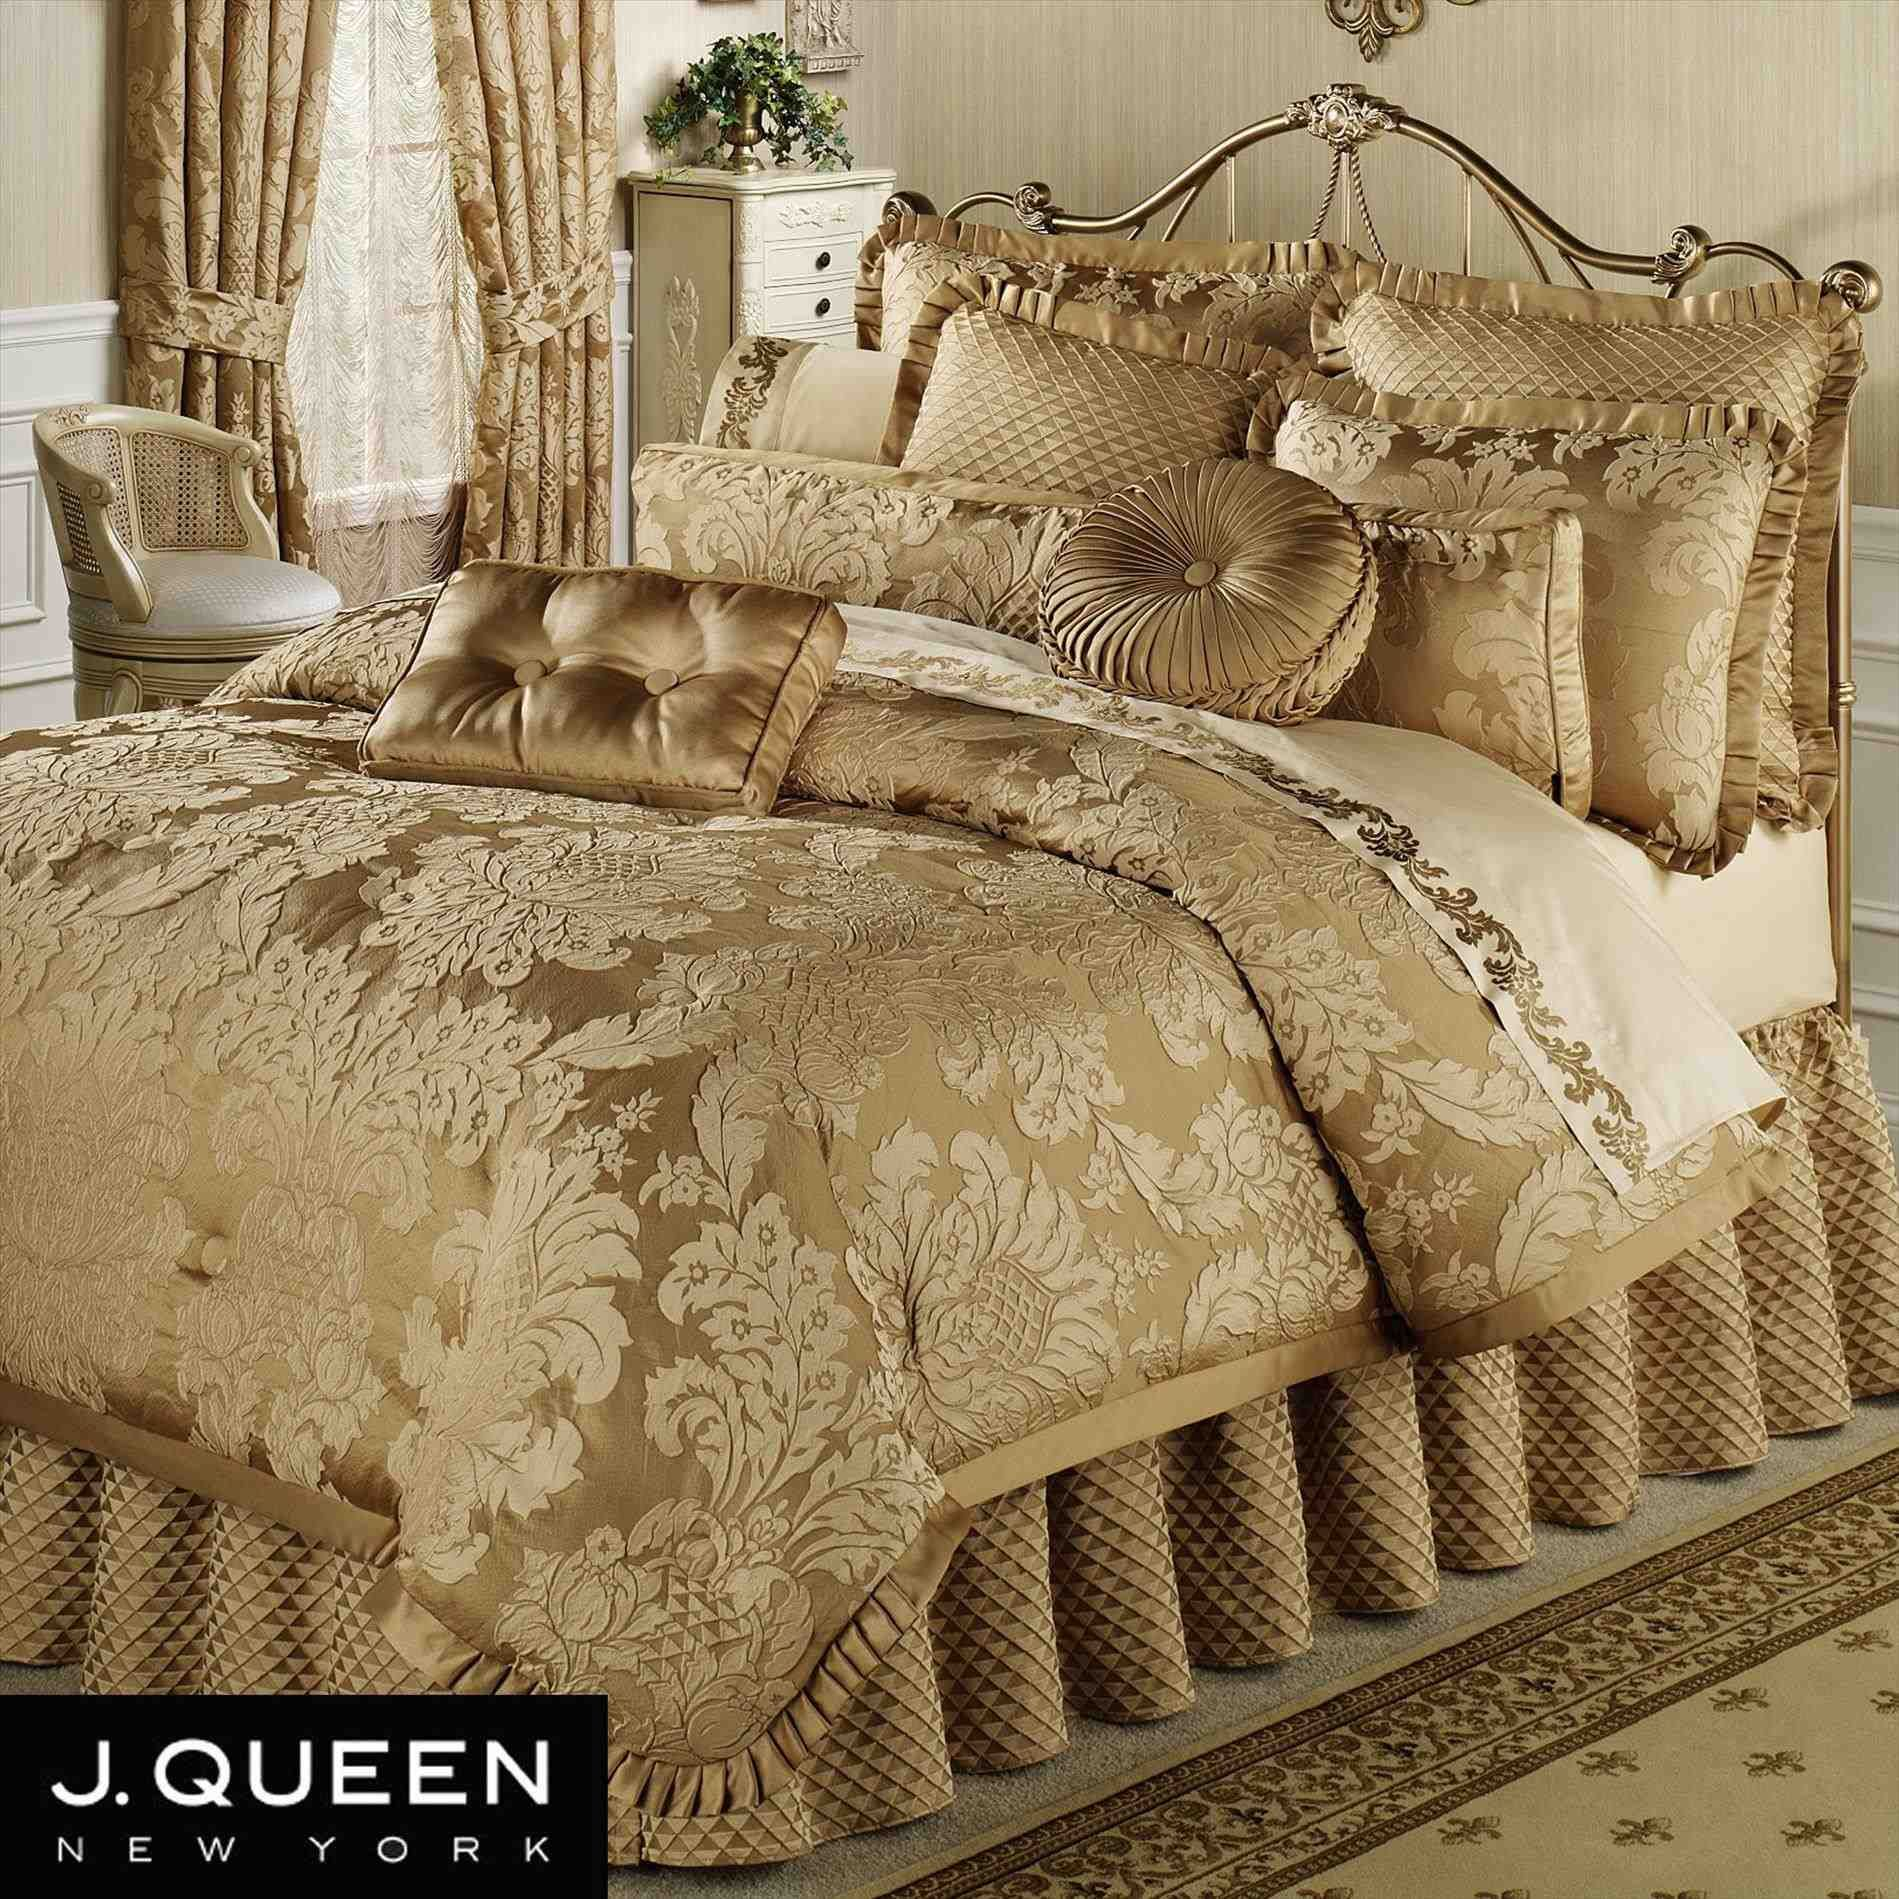 This black and gold twin bedding double needle durable stitching